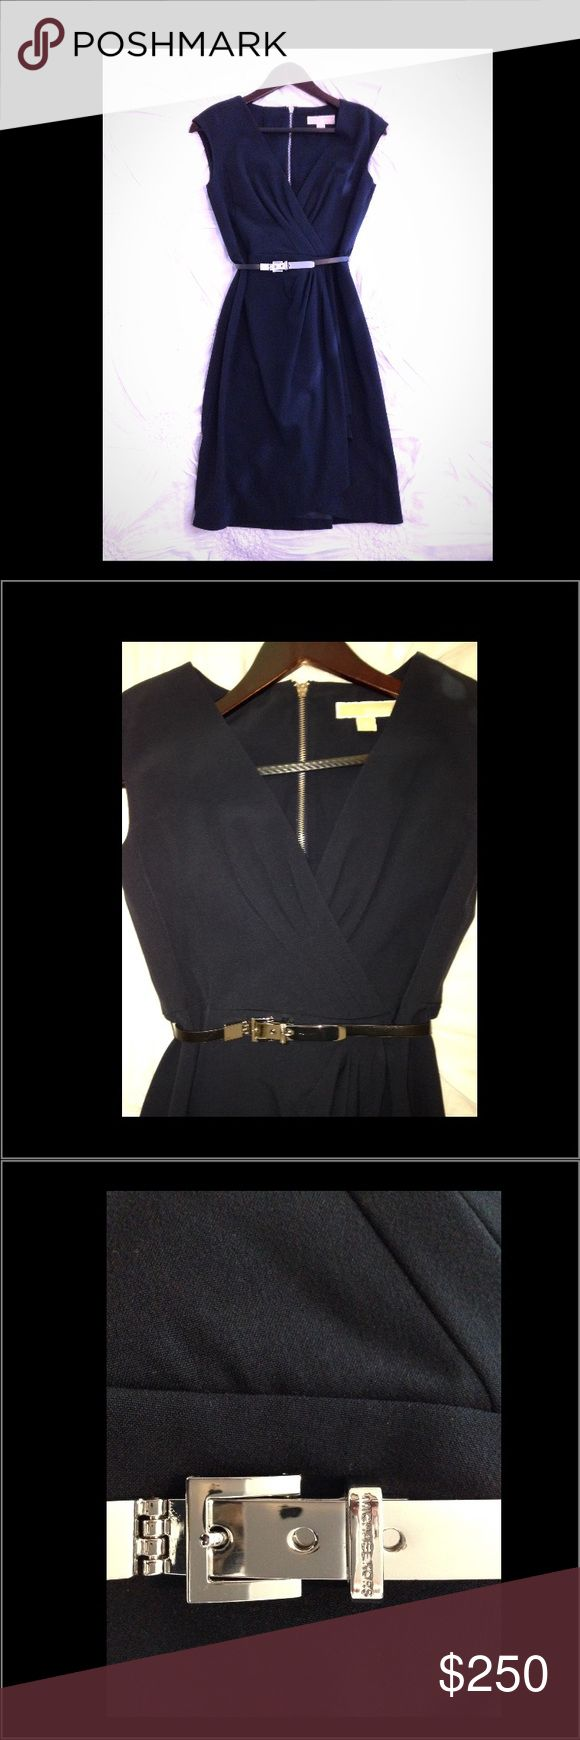 "MICHAEL Kors Navy Mock-Wrap Dress w/Black MK Belt MICHAEL Kors dark Navy Blue mock-wrap Dress, only worn once then organically dry cleaned. Size 2, length hits right at knee on 5'1"" tall person. Fully lined, zips at back with silver MK detail hardware, black faux leather belt with silver MK detail hardware included. Kept in garment bag since purchased at MK Store located in Beverly Center, Los Angels. Additional photos and details available upon request.  Thank You Michael Kors Dresses Midi"